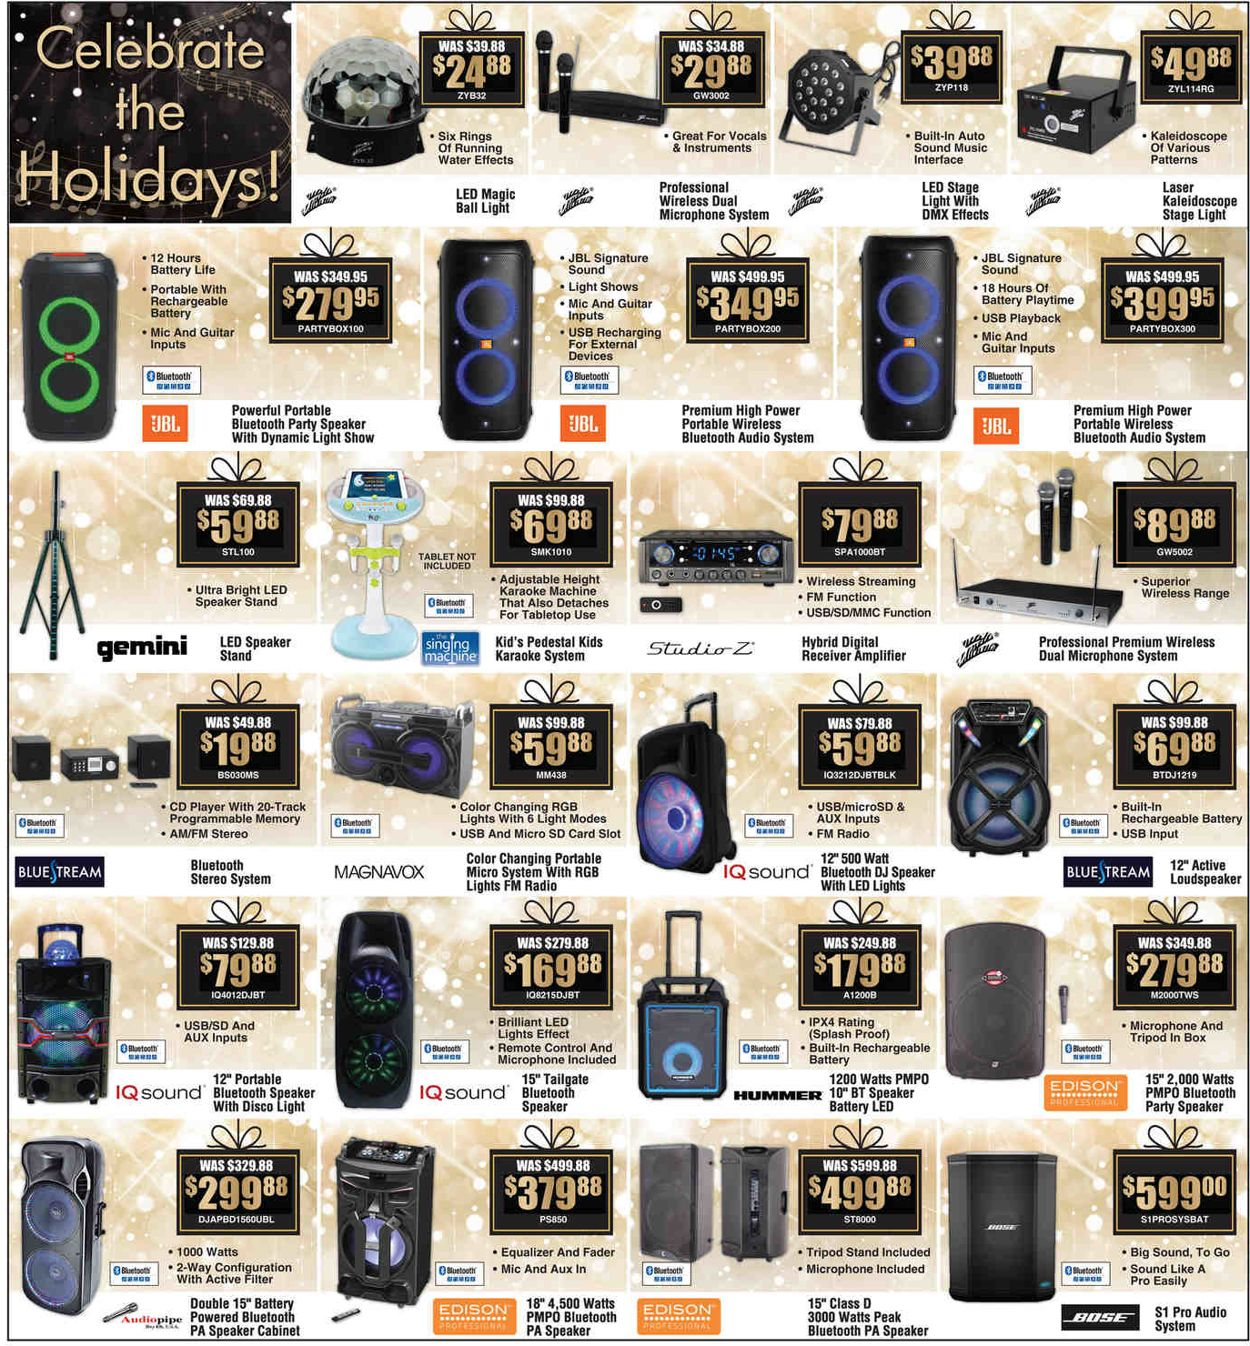 Catalogue Brandsmart USA - Christmas Deals Ad 2019 from 12/20/2019